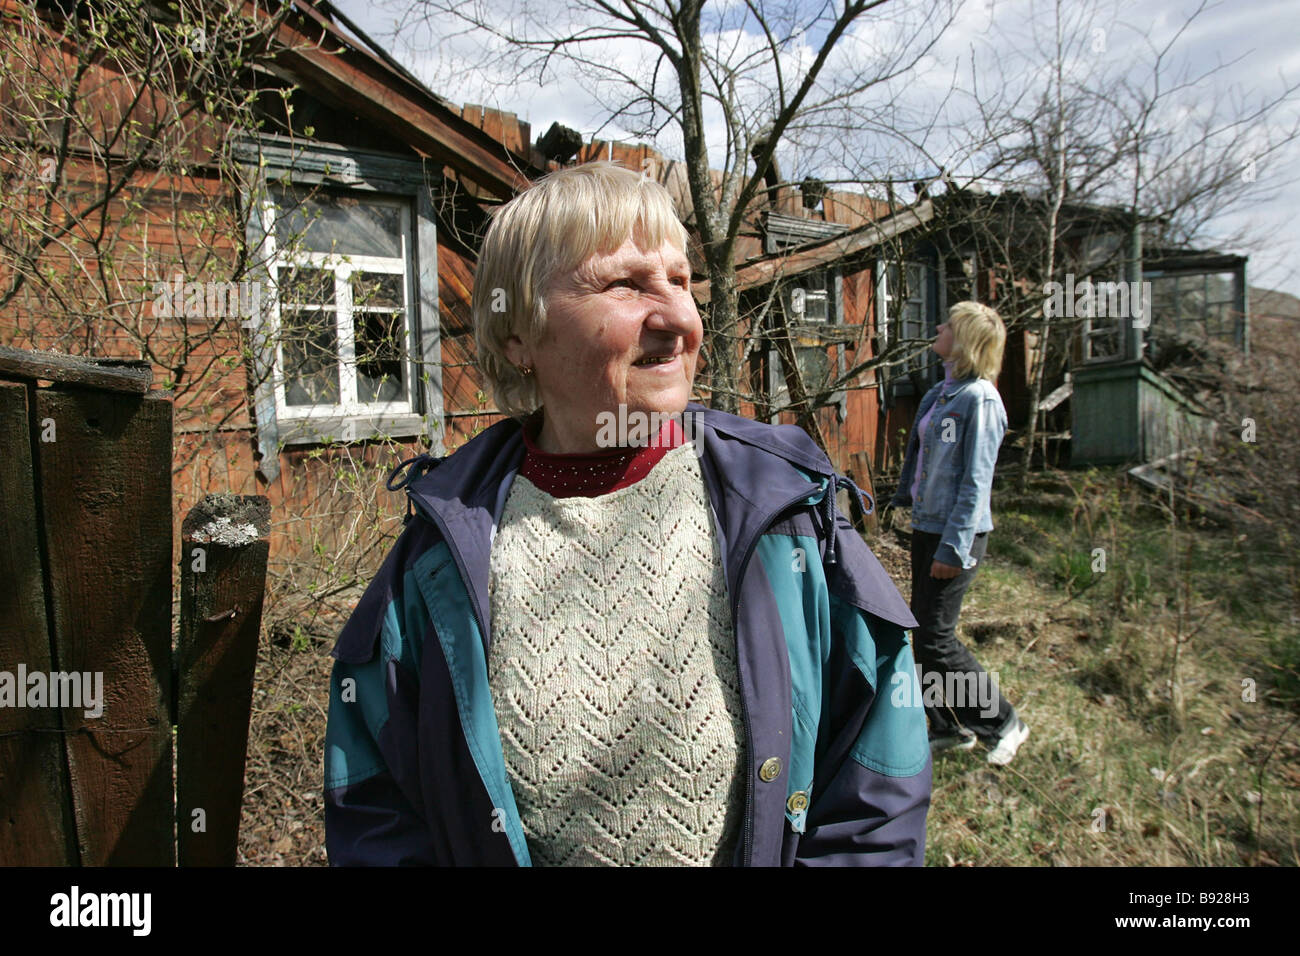 Valentina Kolyada in the foreground and Larisa Prikhodko lived in the village of Orevichi Belarus which was evacuated - Stock Image